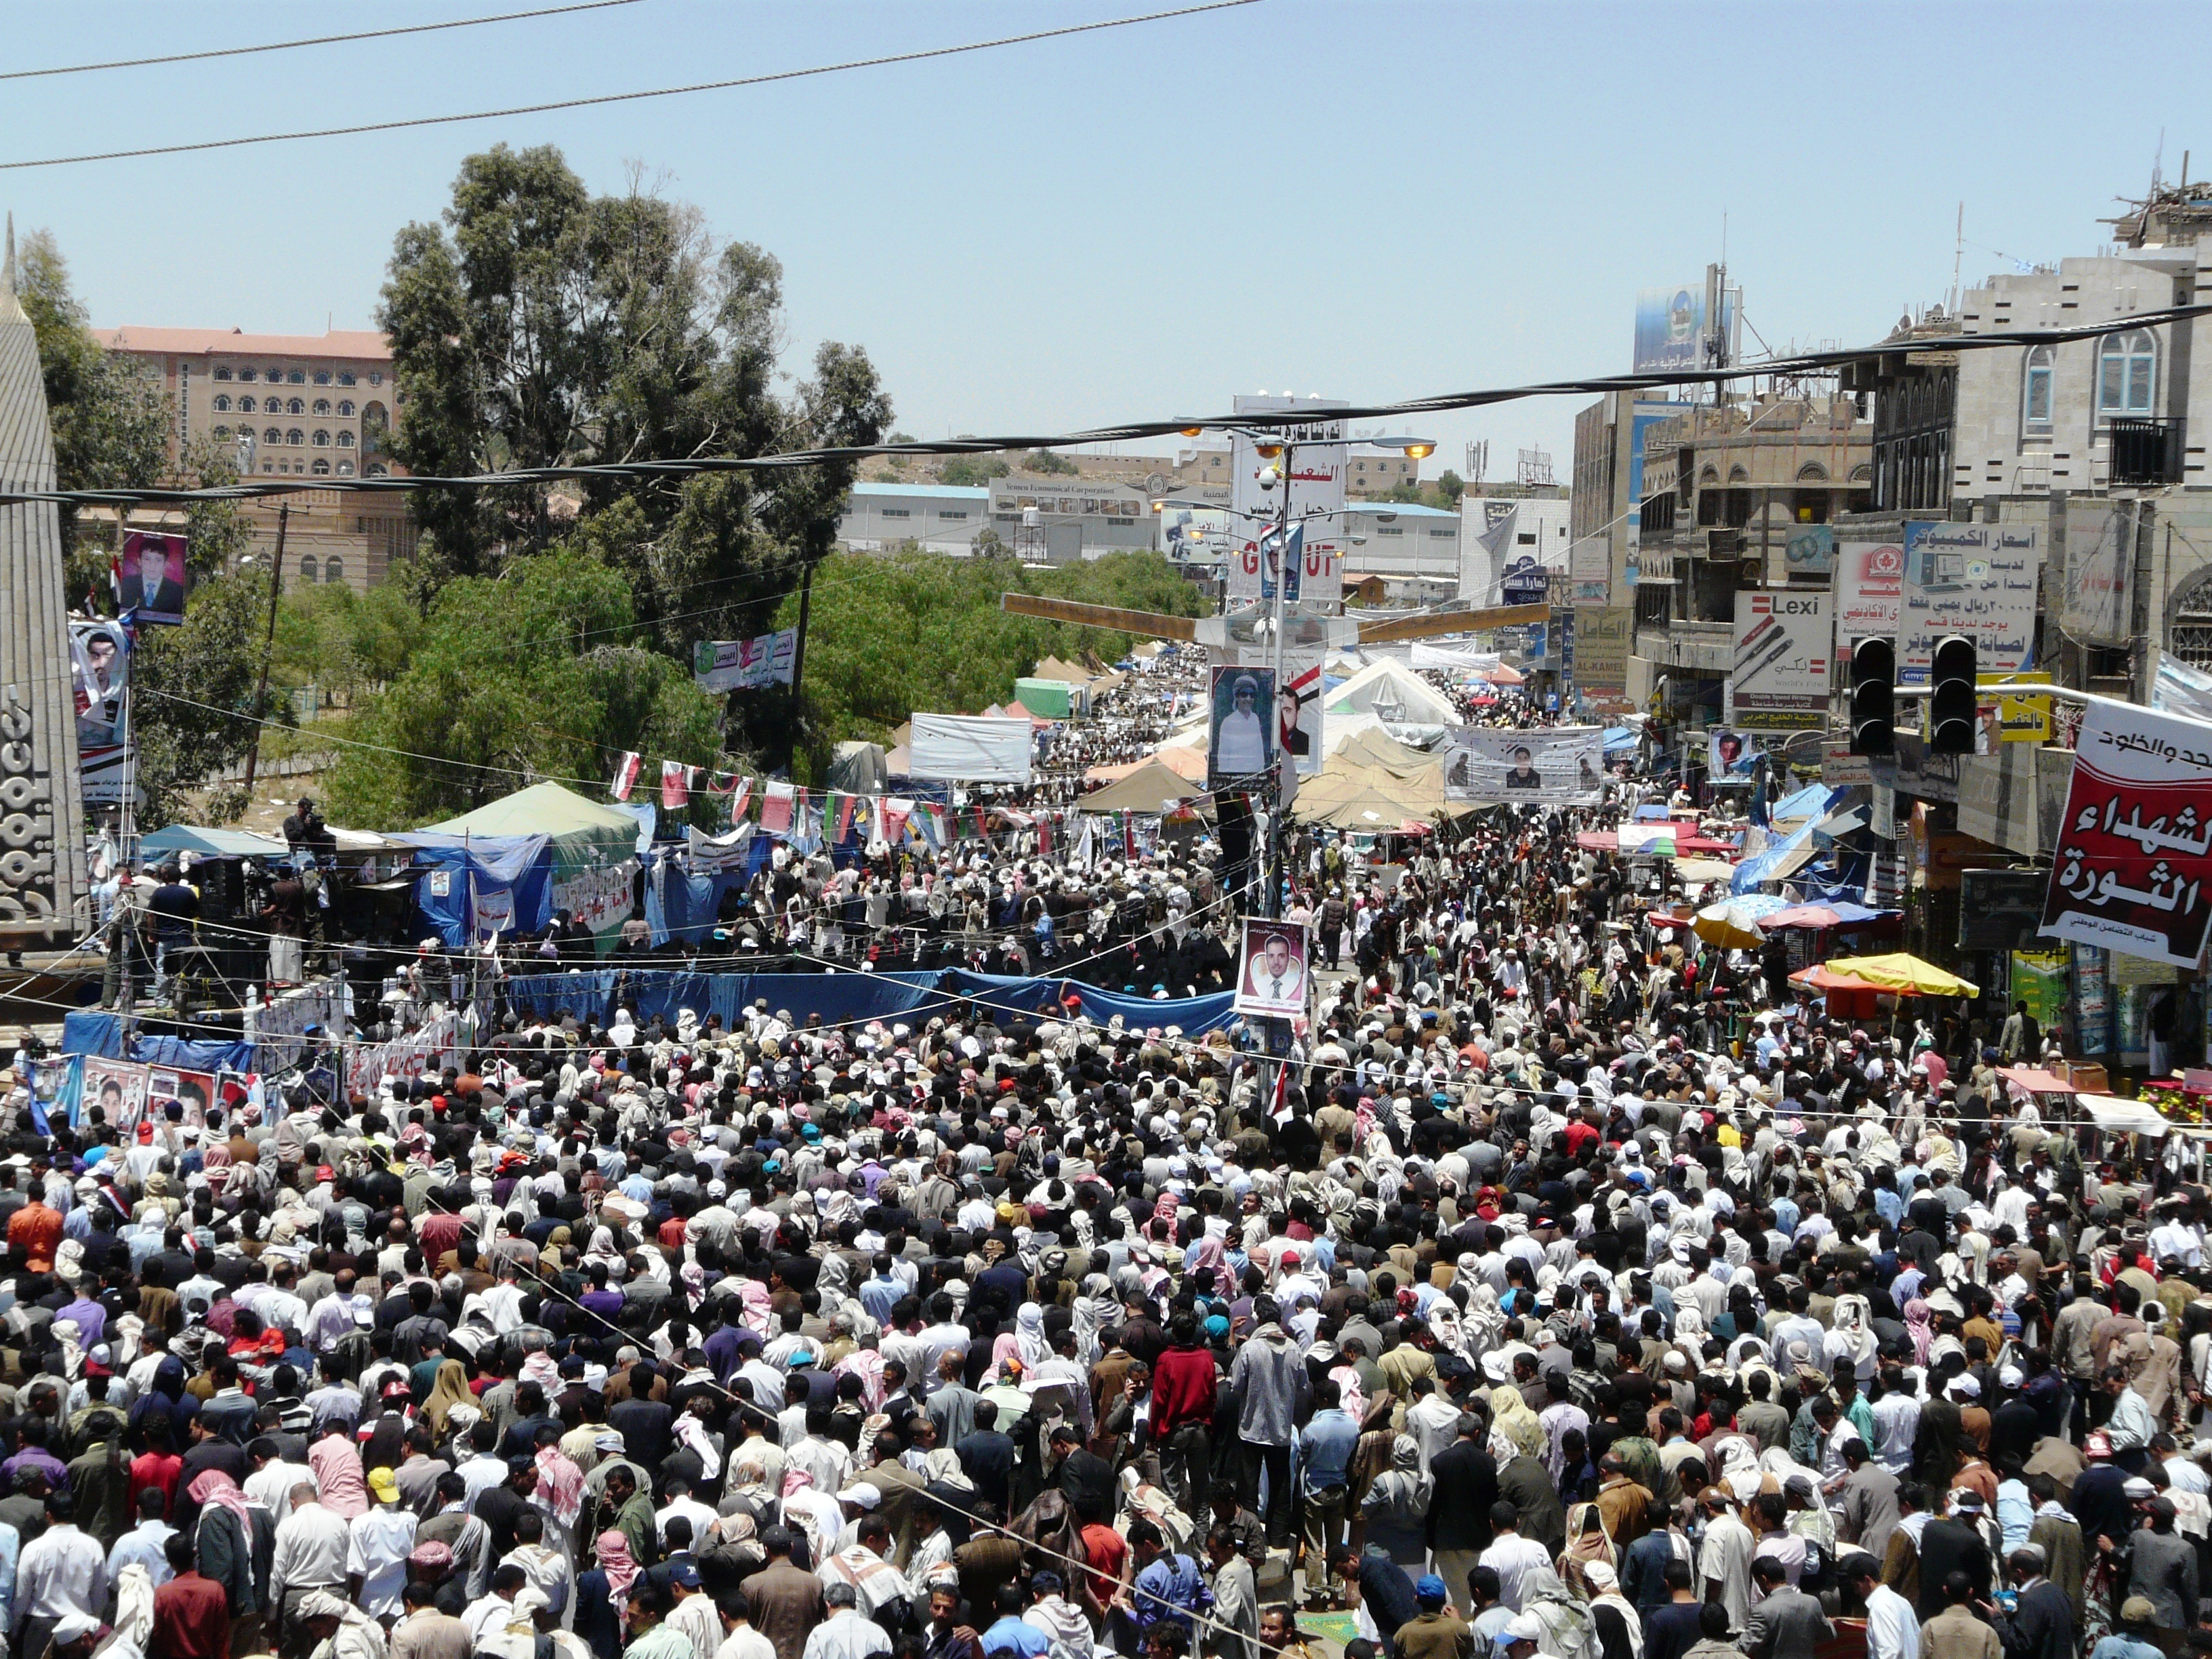 Yemeni_Protests_4-Apr-2011_P01.JPG